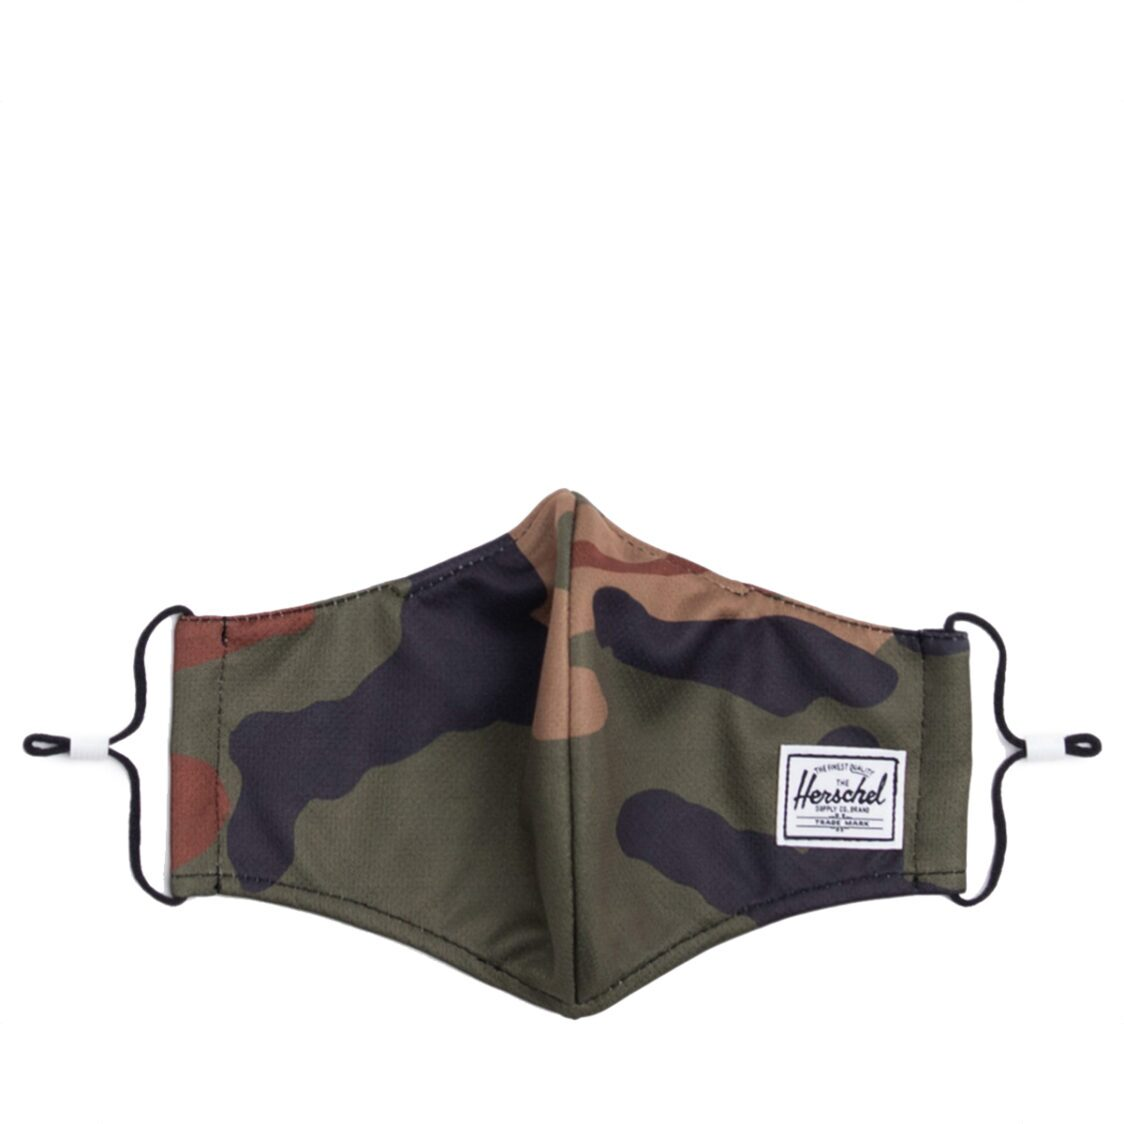 Herschel Classic Fitted Face Mask - Woodland Camo